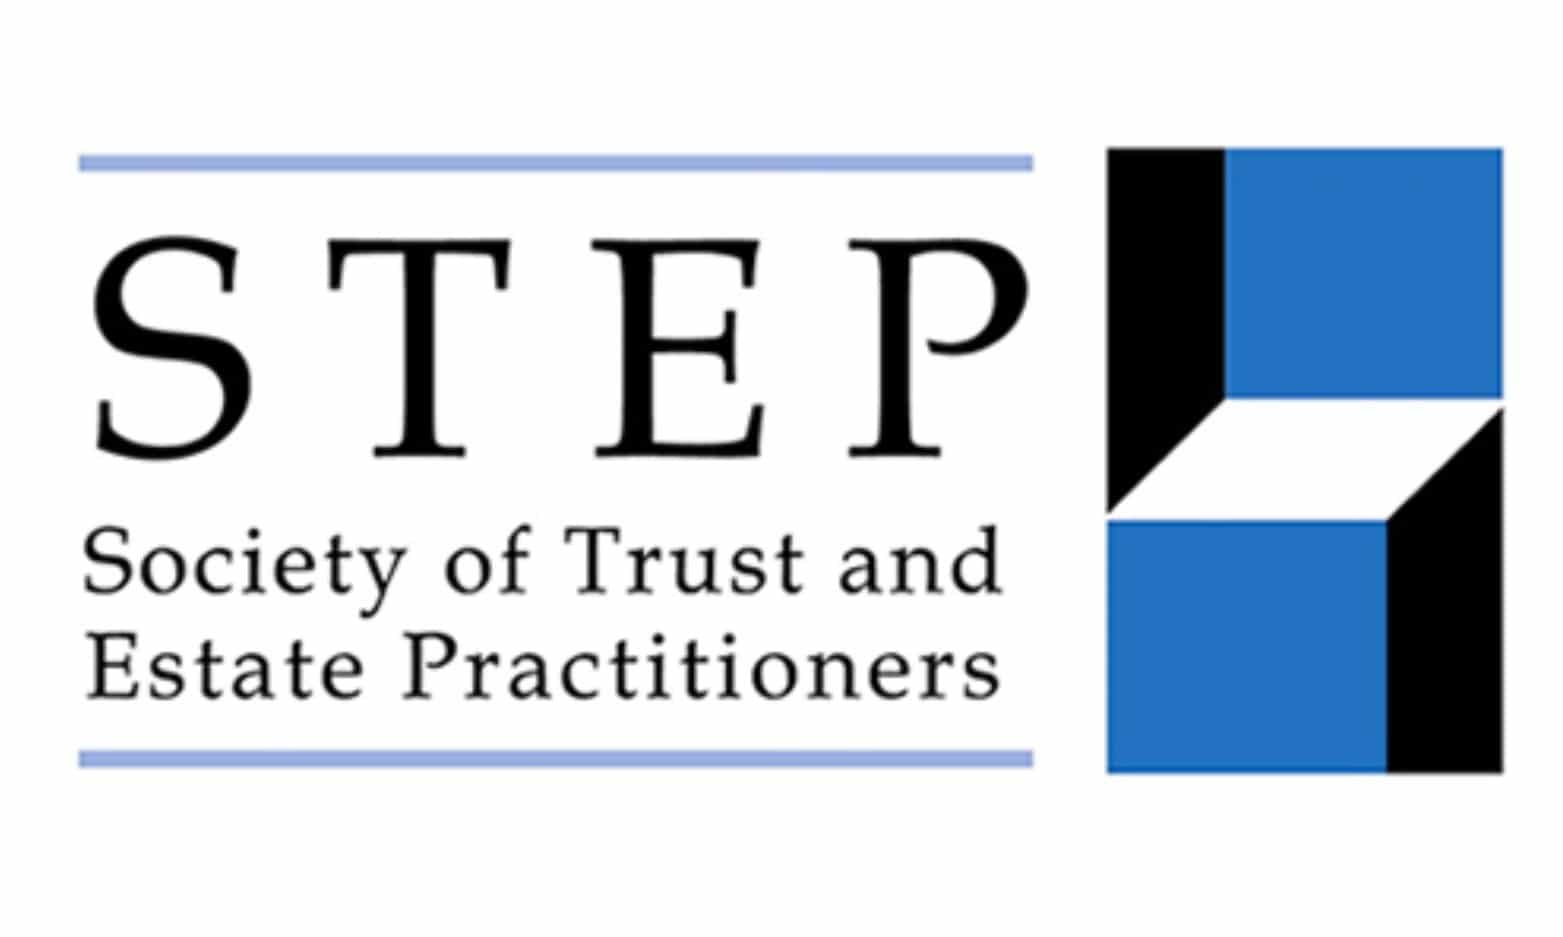 Society of Trust and Estate Practitioners, accreditation, Solicitors in Dorset